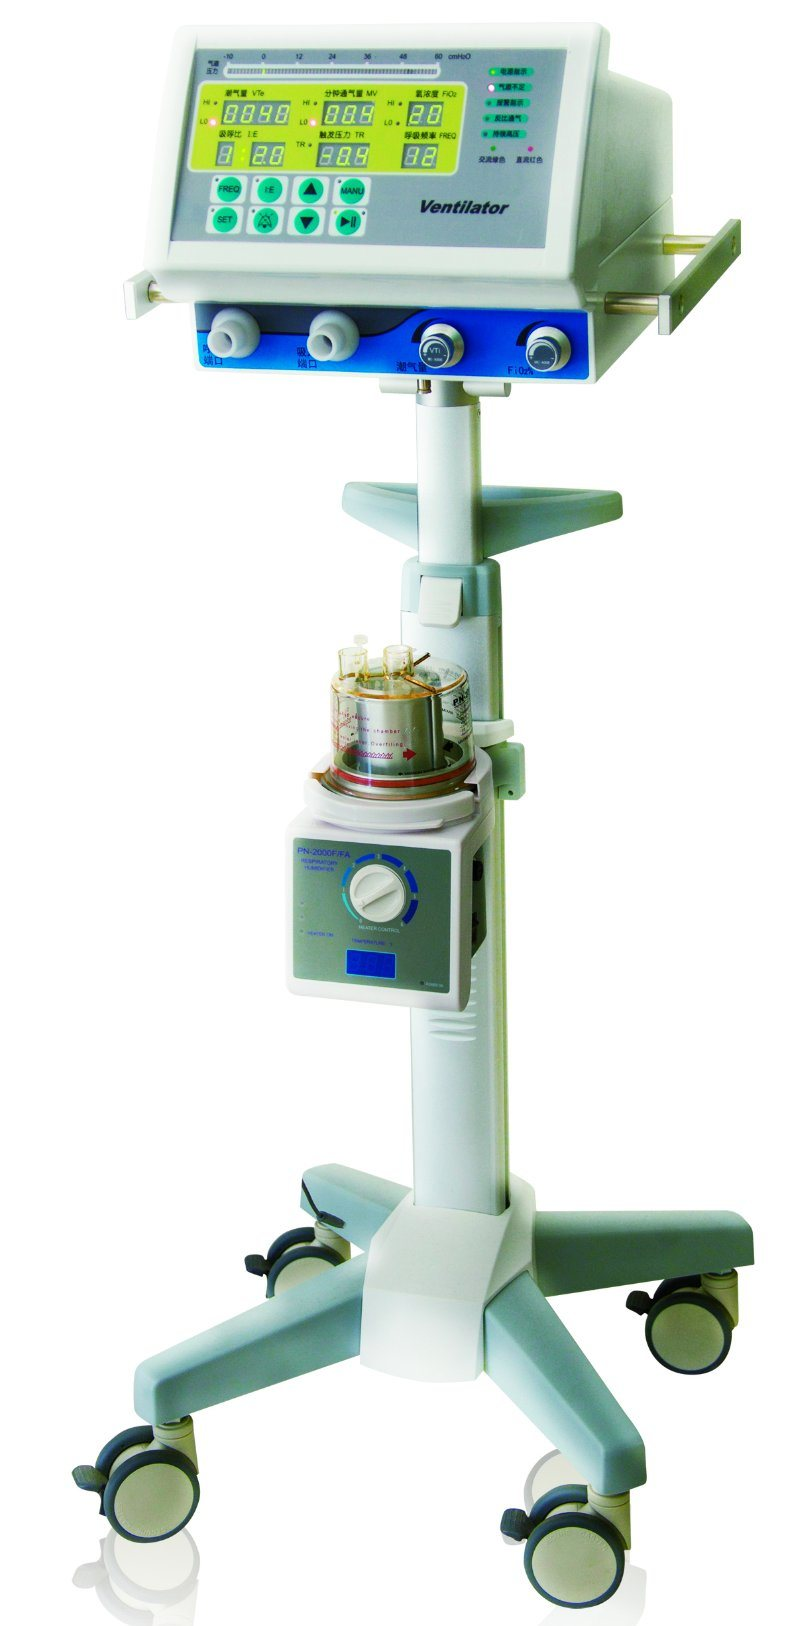 High Quality Medical/Hospital Ventilator Lh8400 for Operation and Rehabilitation